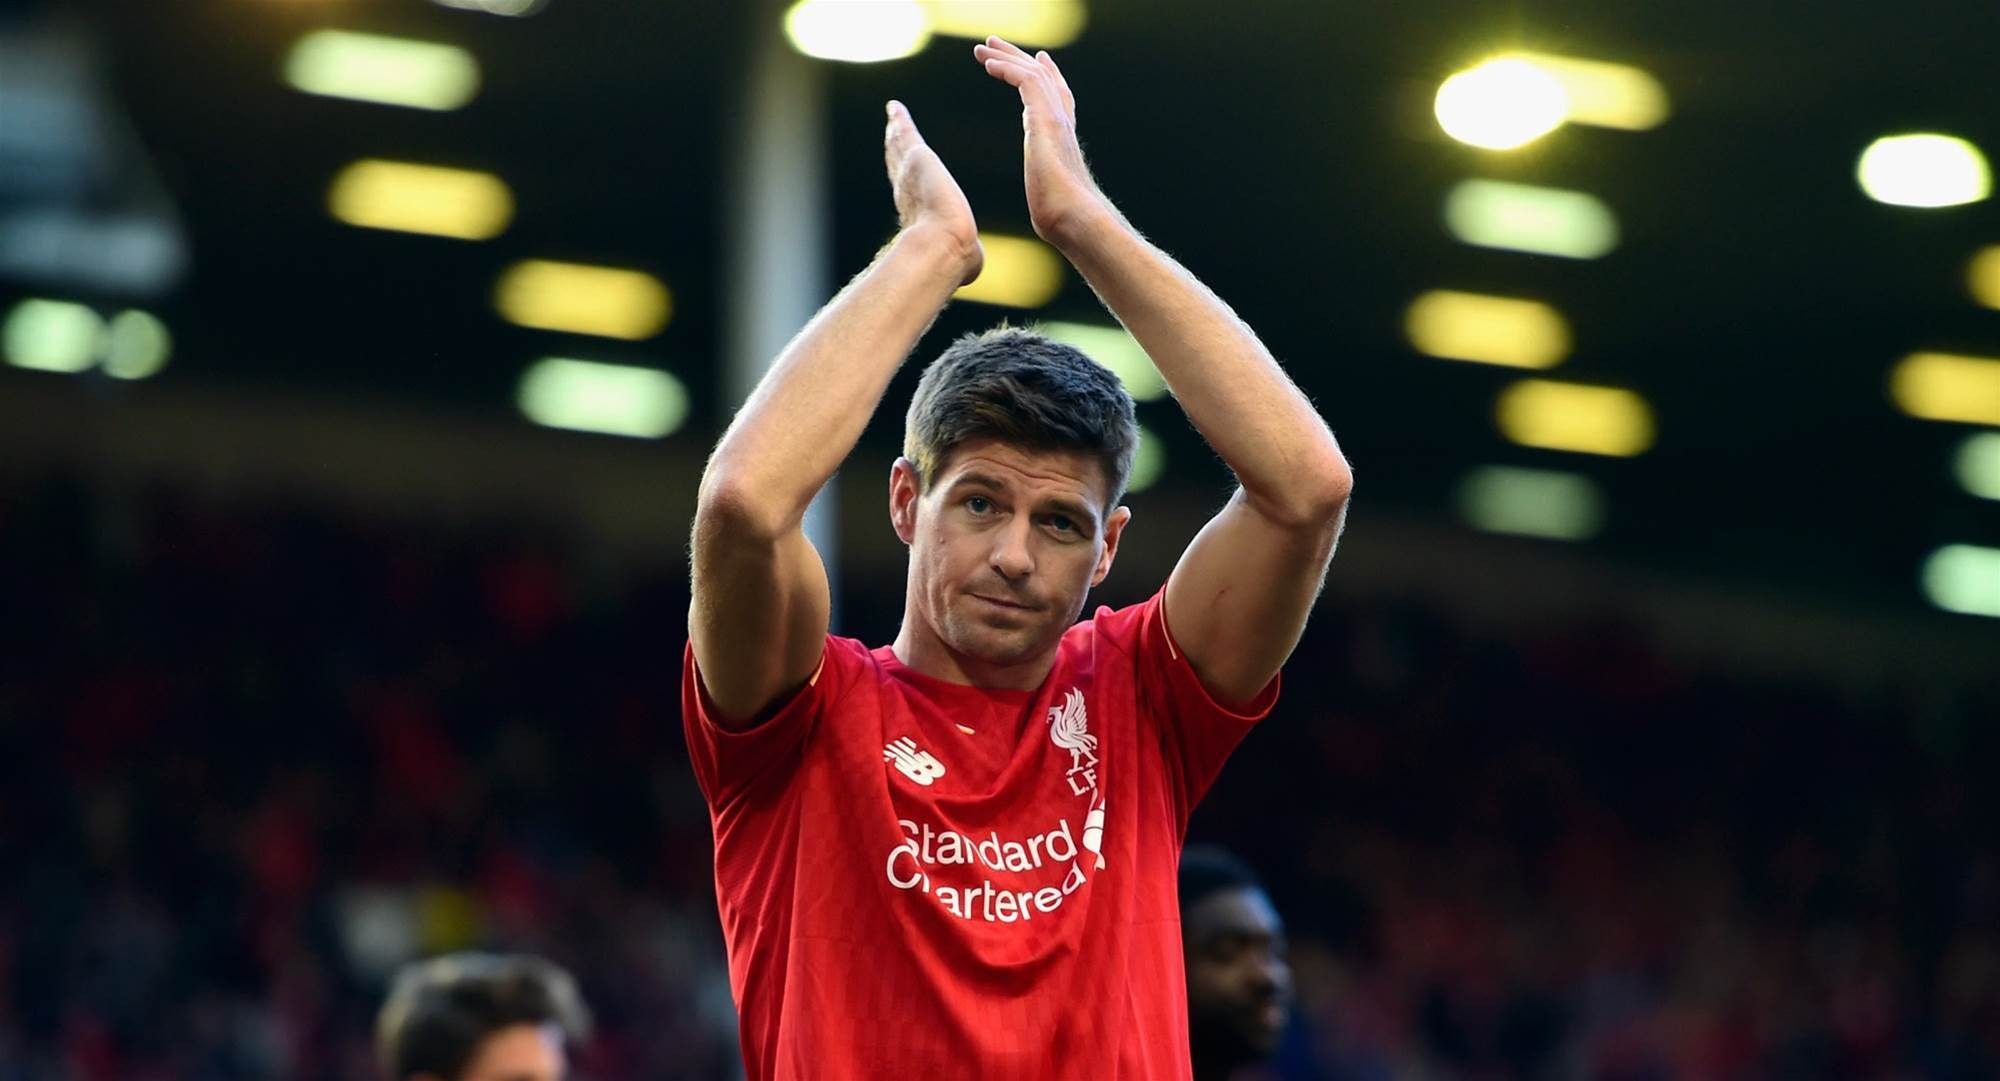 Gerrard to play in Sydney